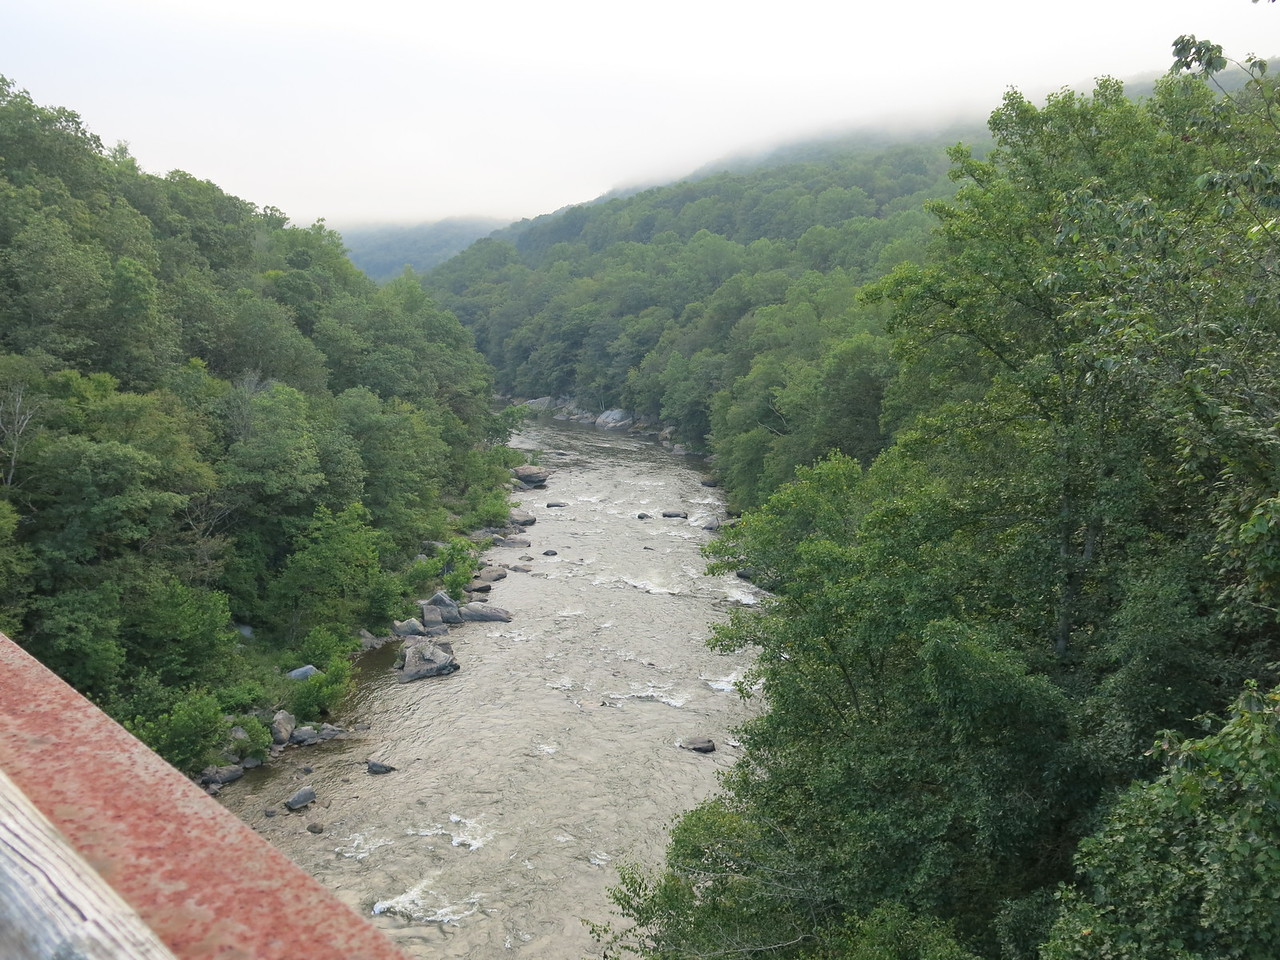 The Yough Gorge seen from High Bridge looking downstream